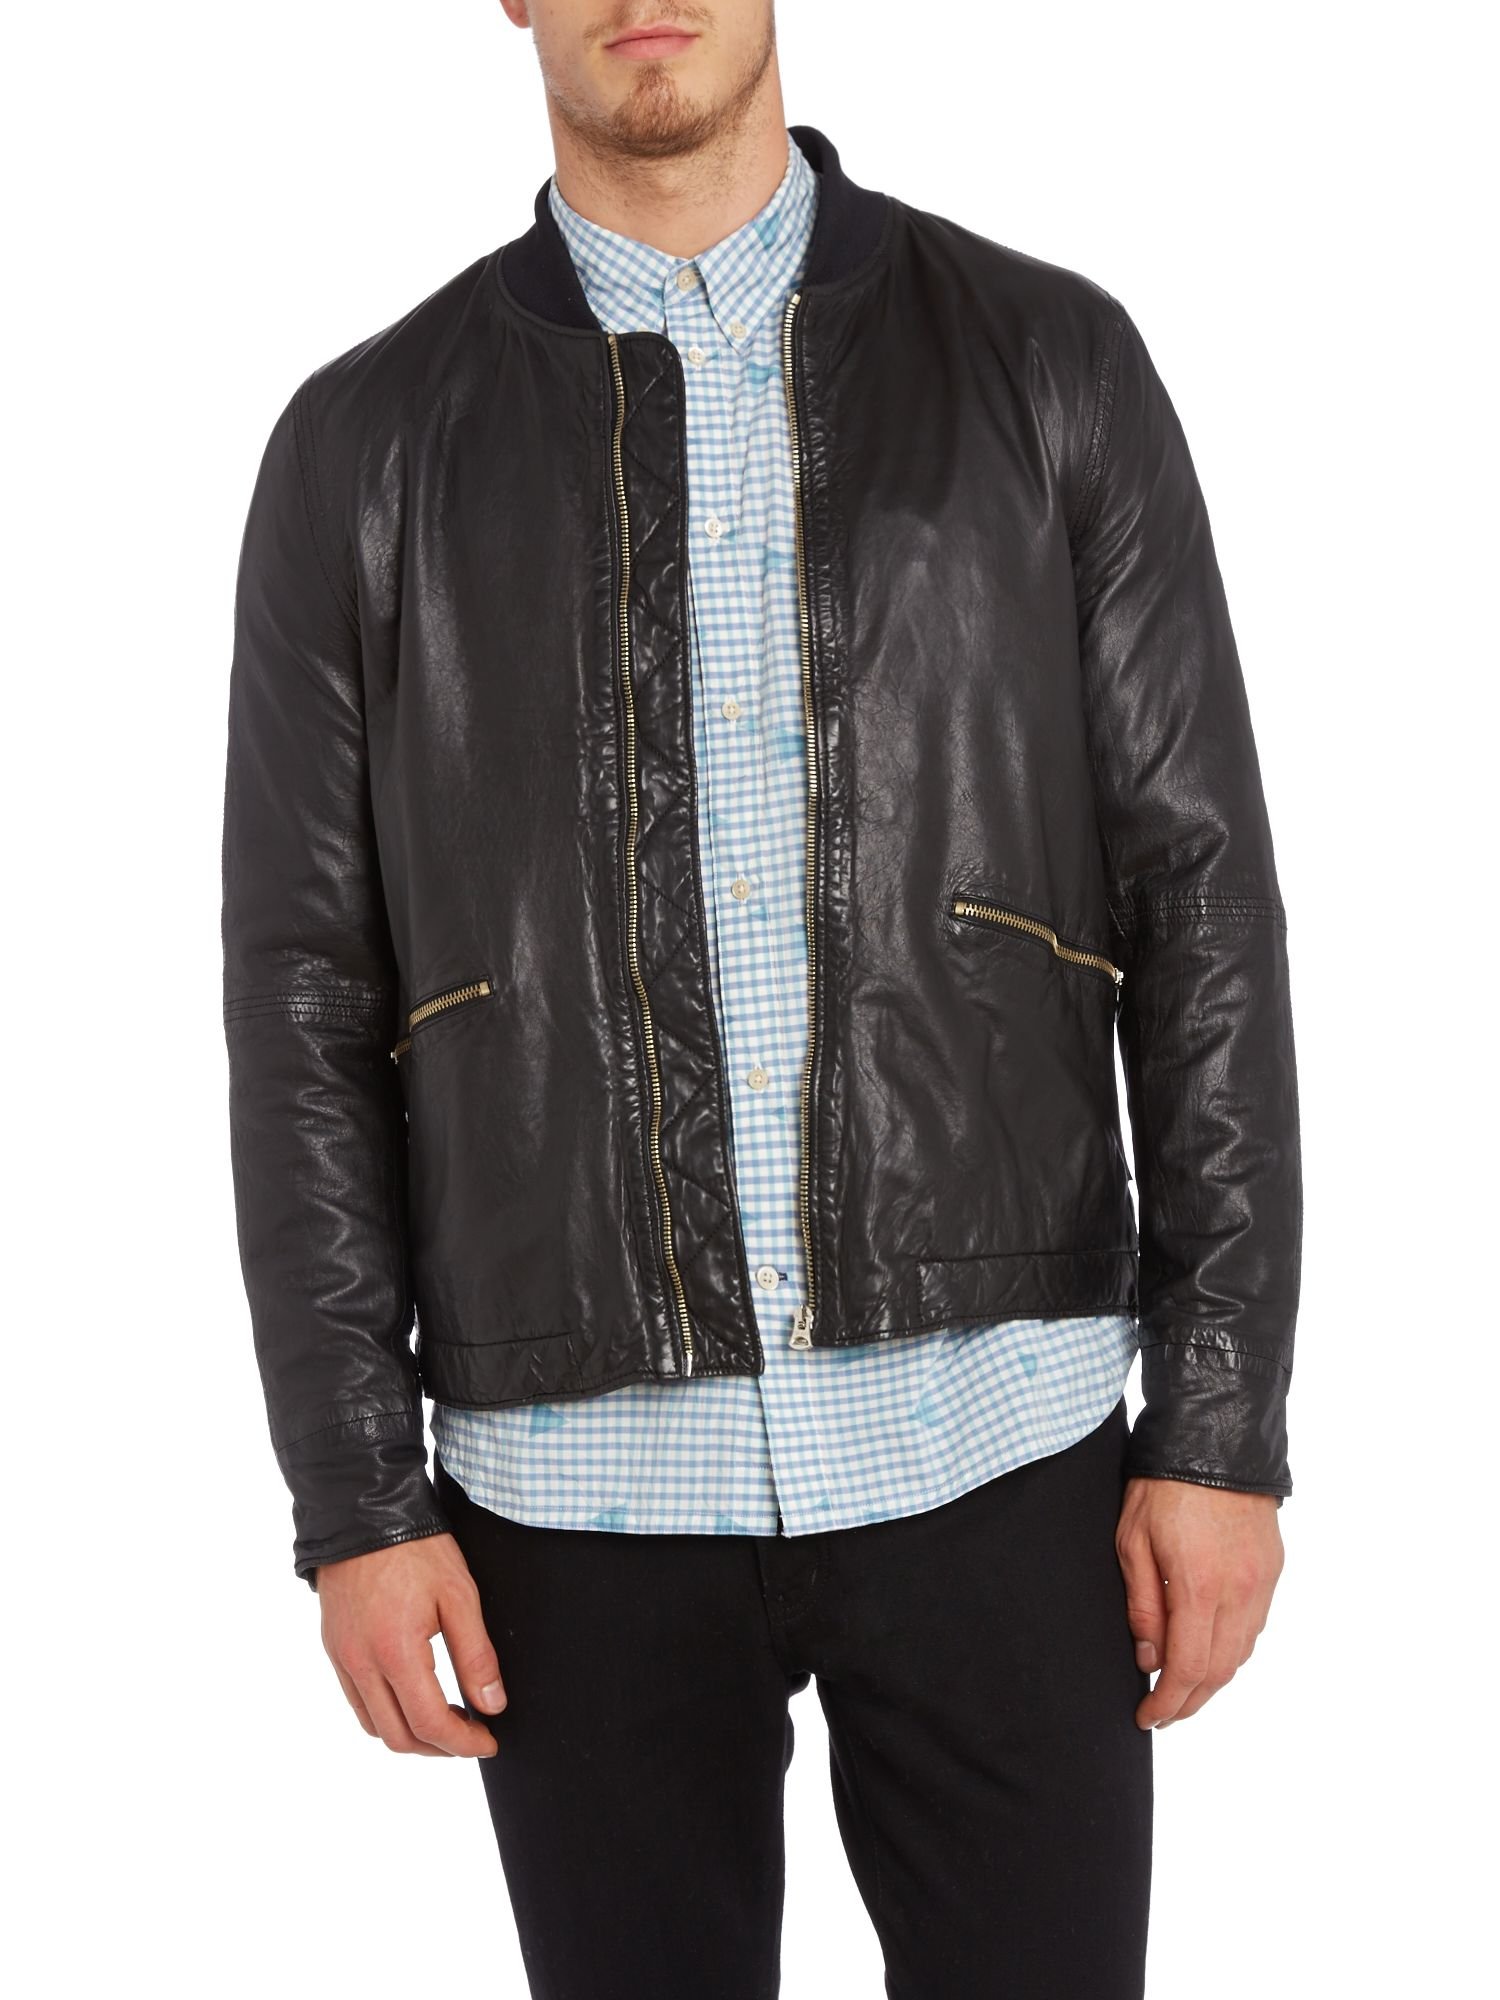 Two pocket leather jacket